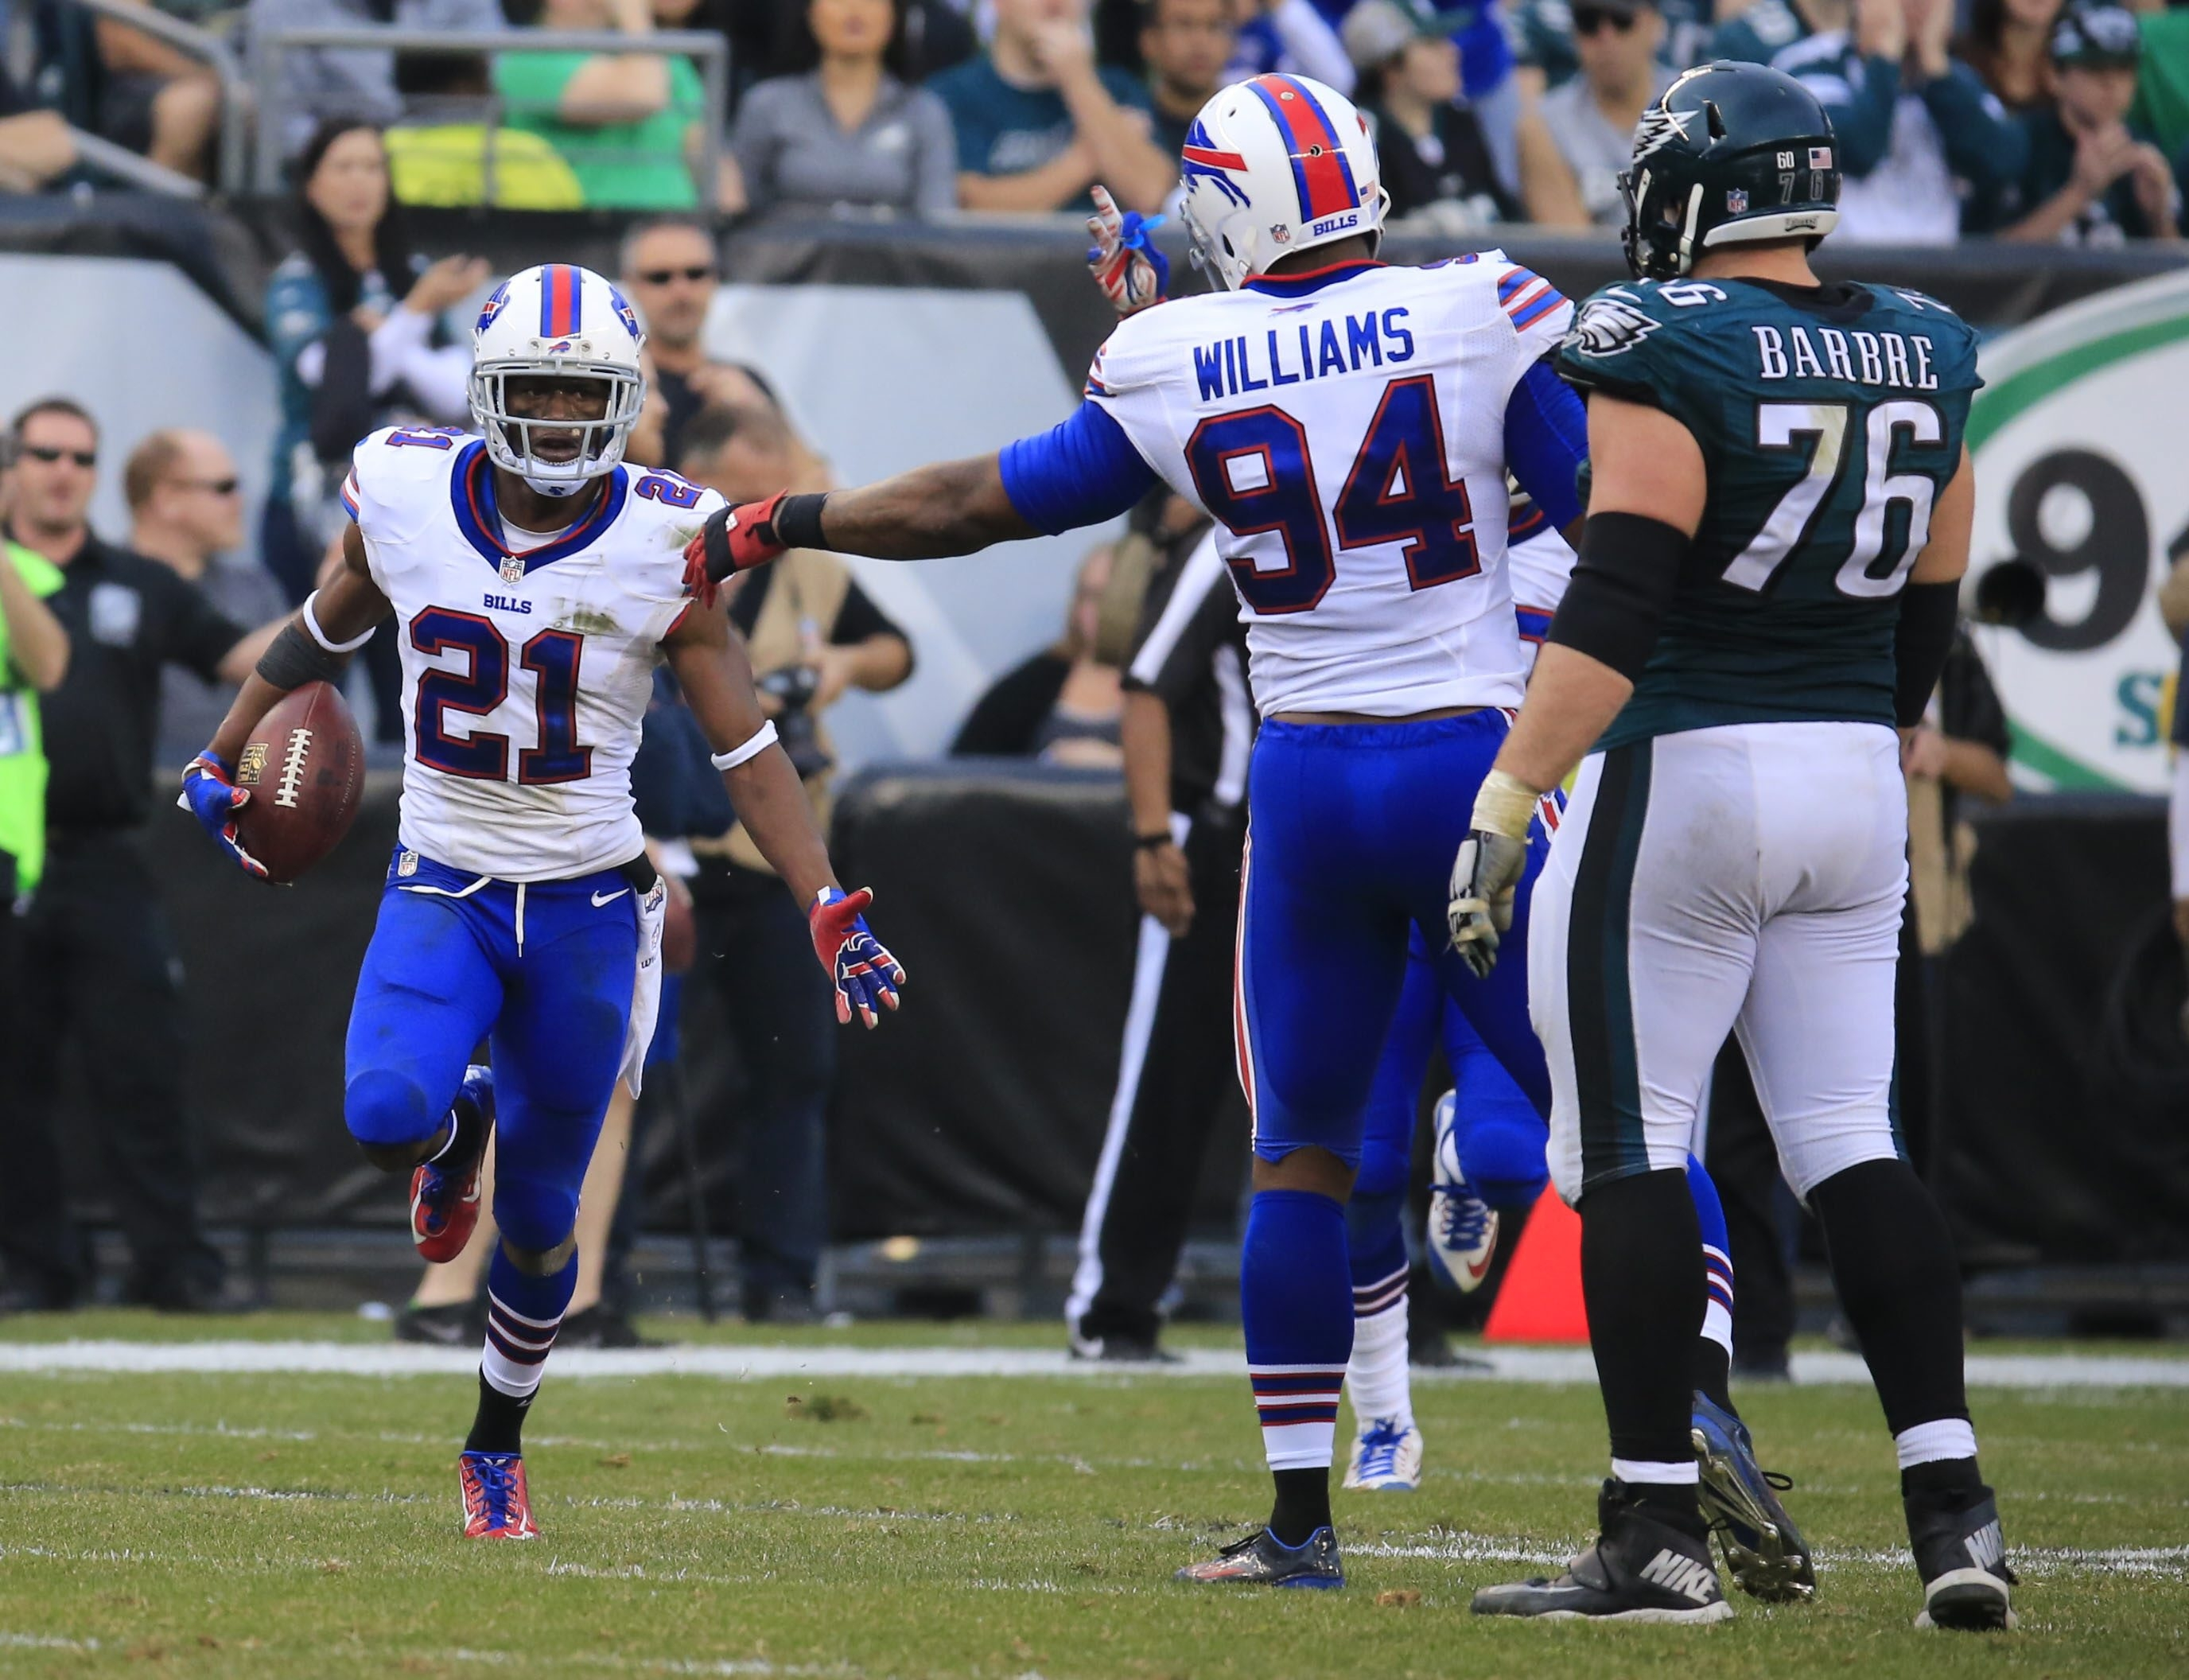 The Bills Leodis McKelvin celebrates an interception on a ball intended for Eagles Brent Celek. The play was reviewed but wasn't overturned.